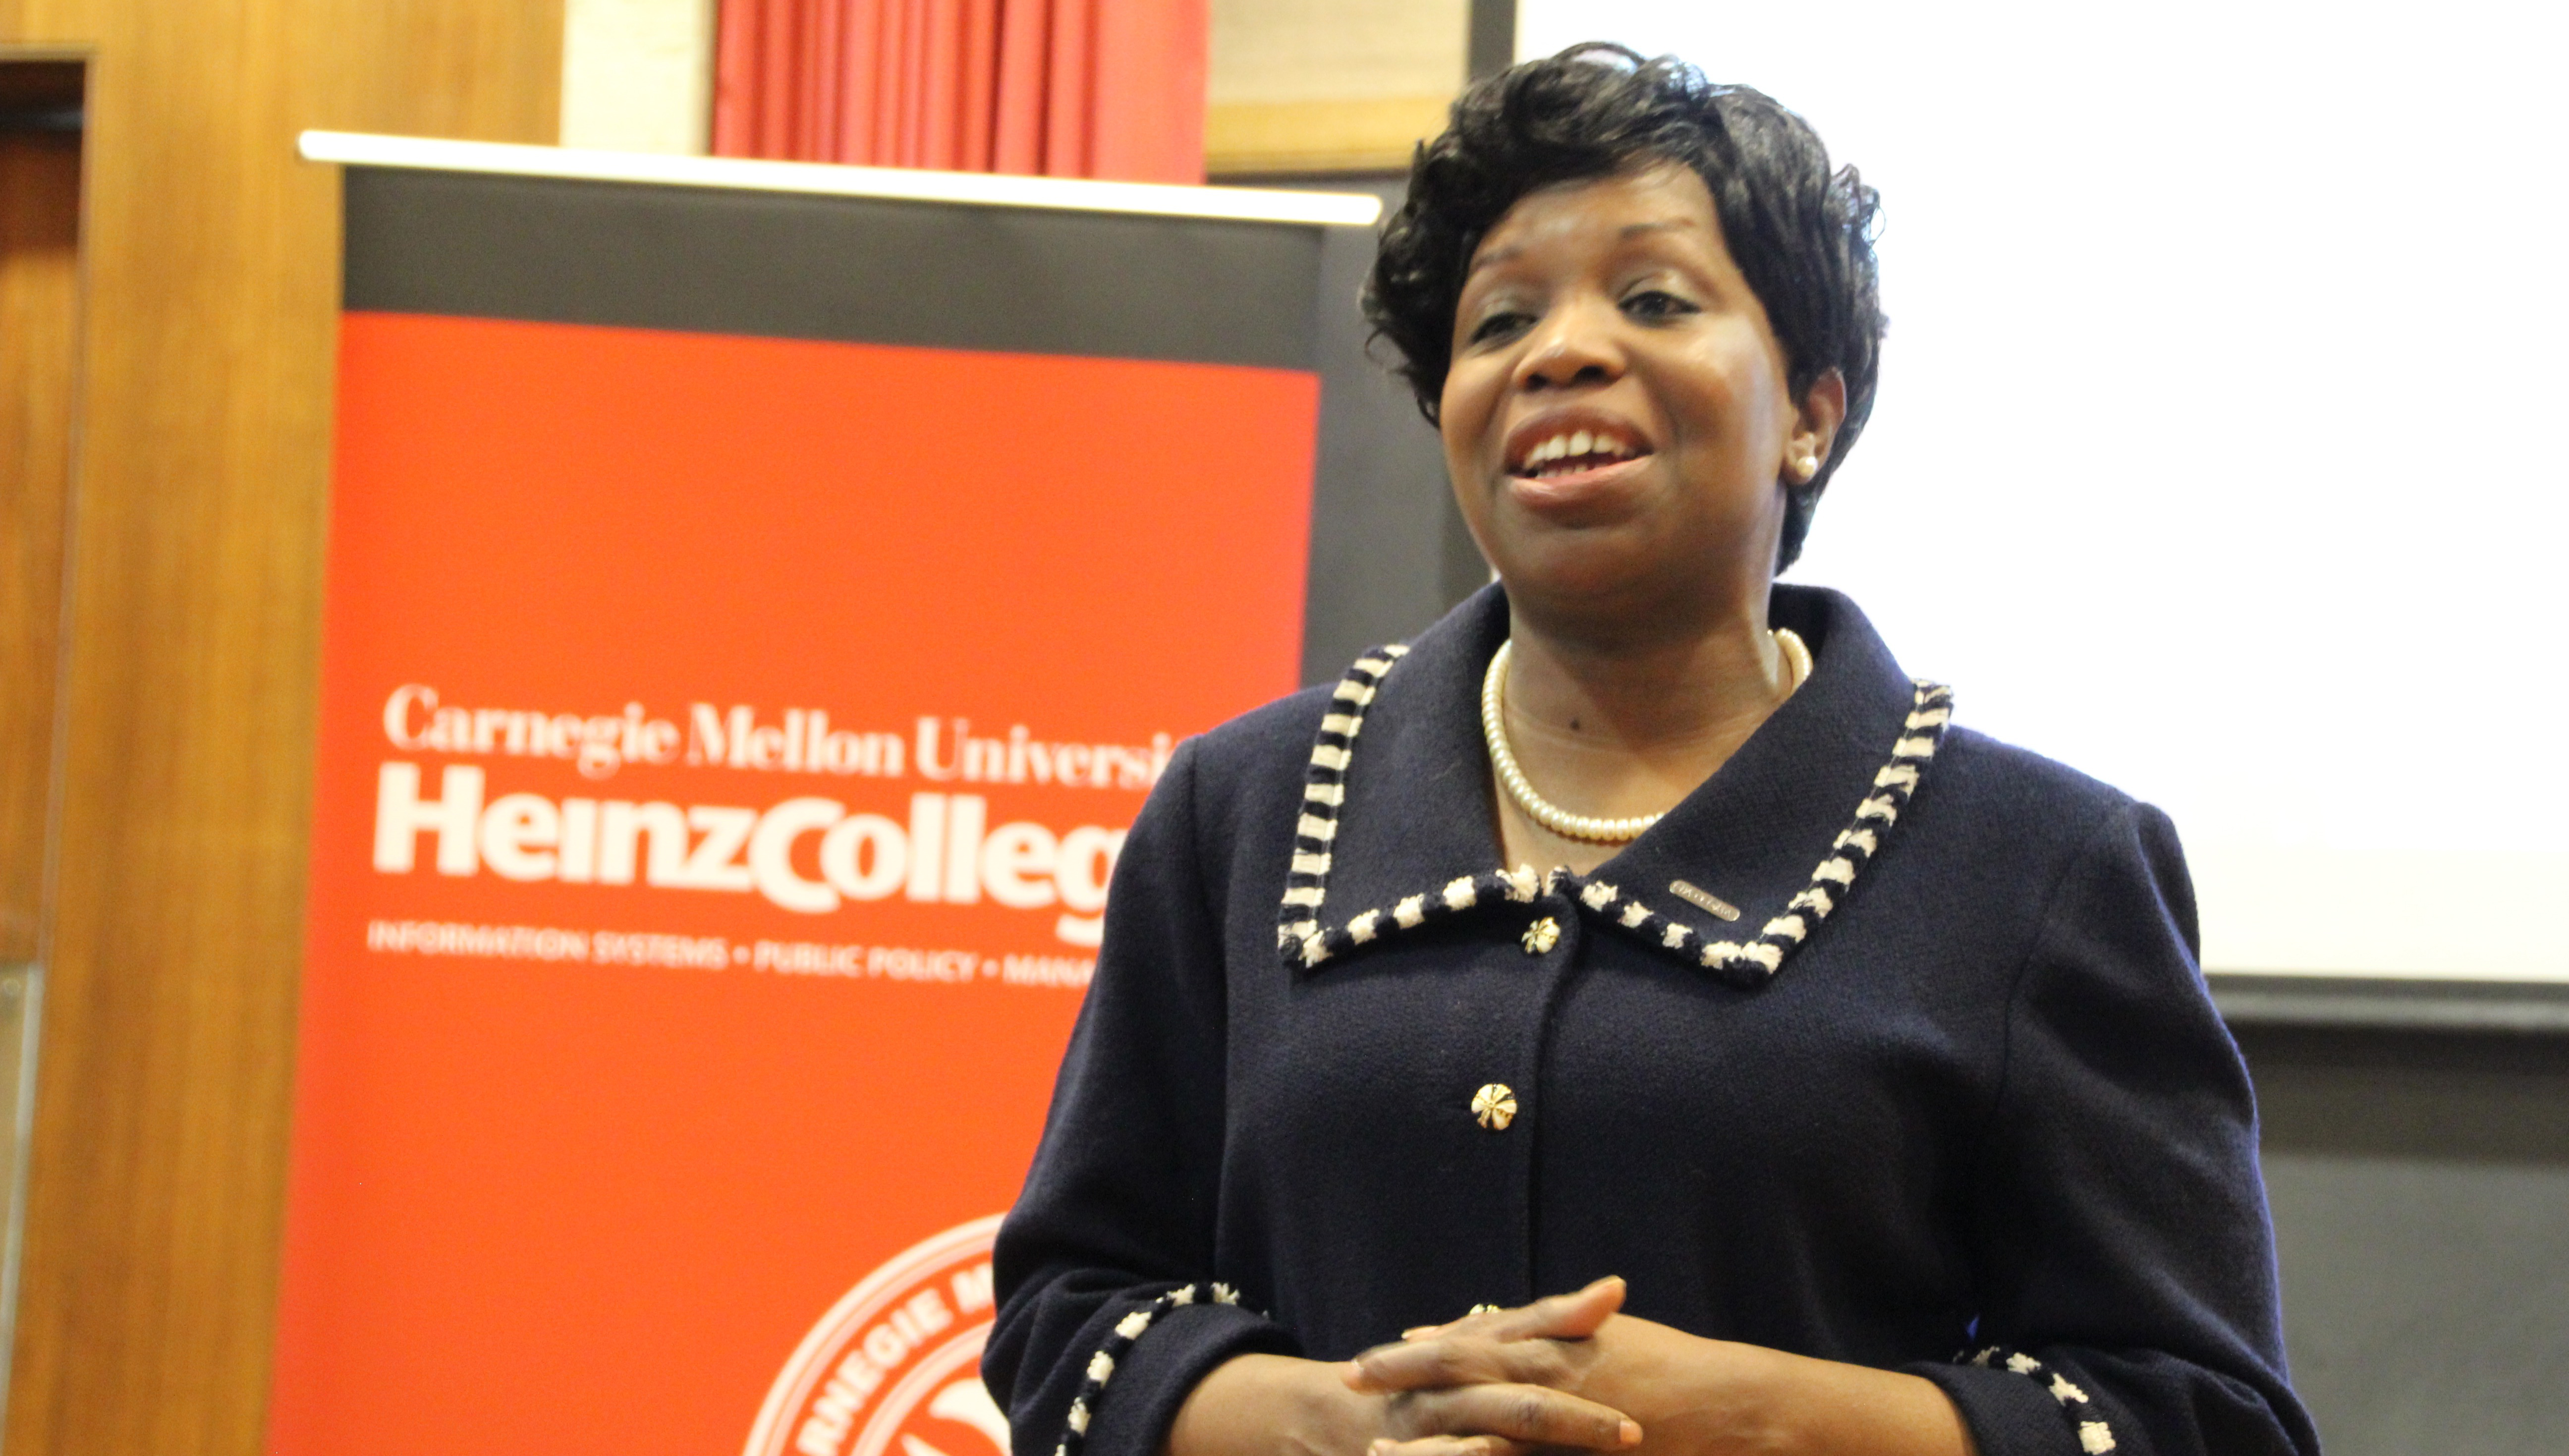 Kimberly Ellison-Taylor speaking at Heinz College